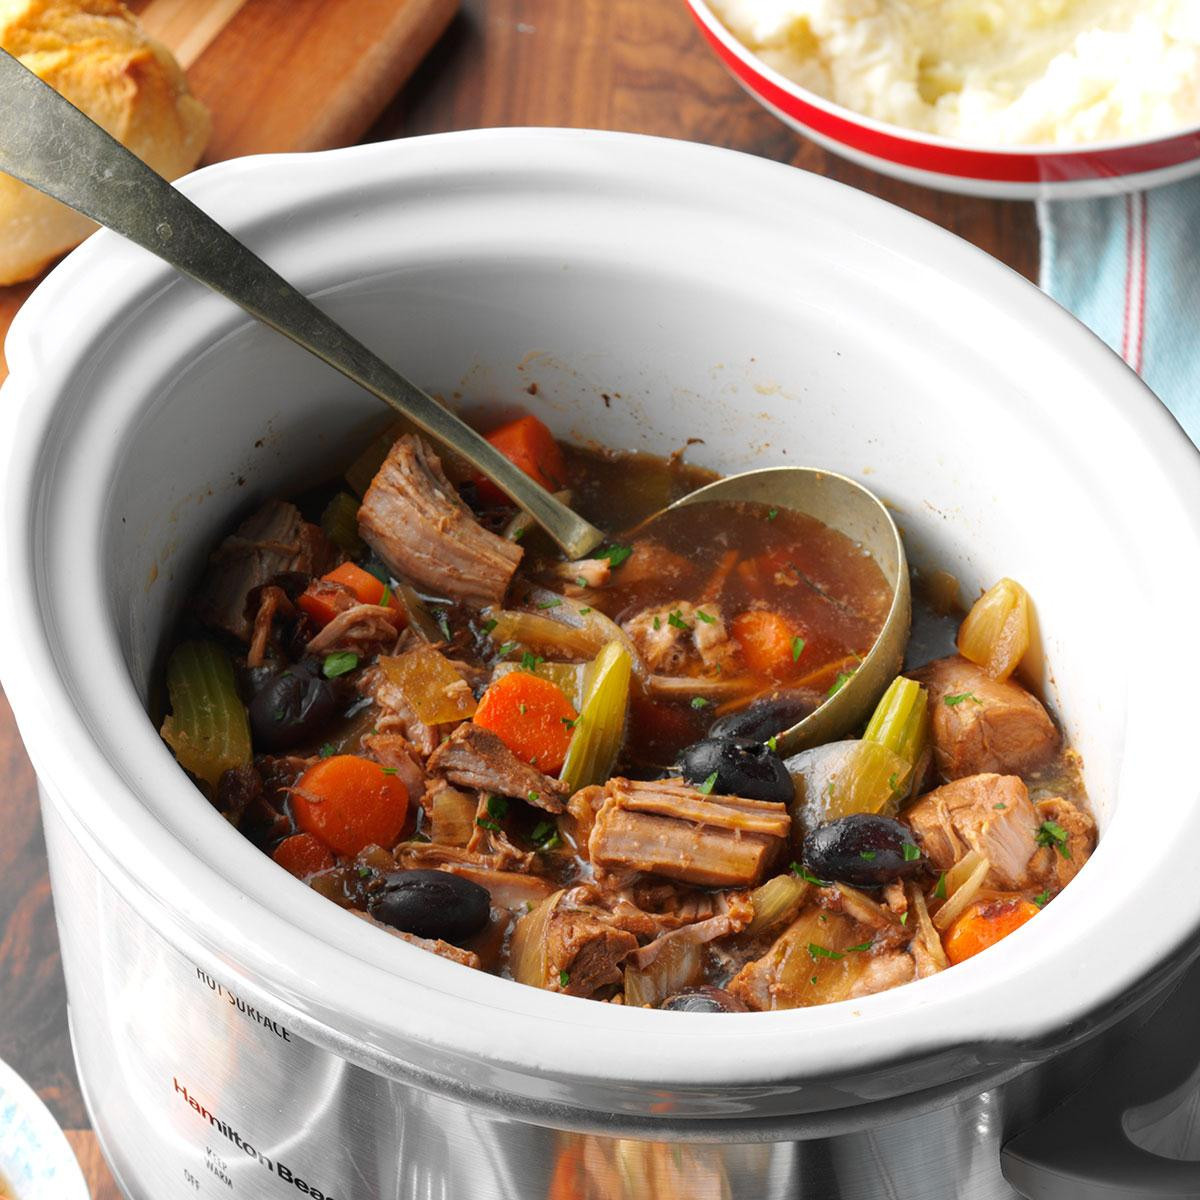 Pork Stew Recipe Slow Cooker  Slow Cooked Pork Stew Recipe